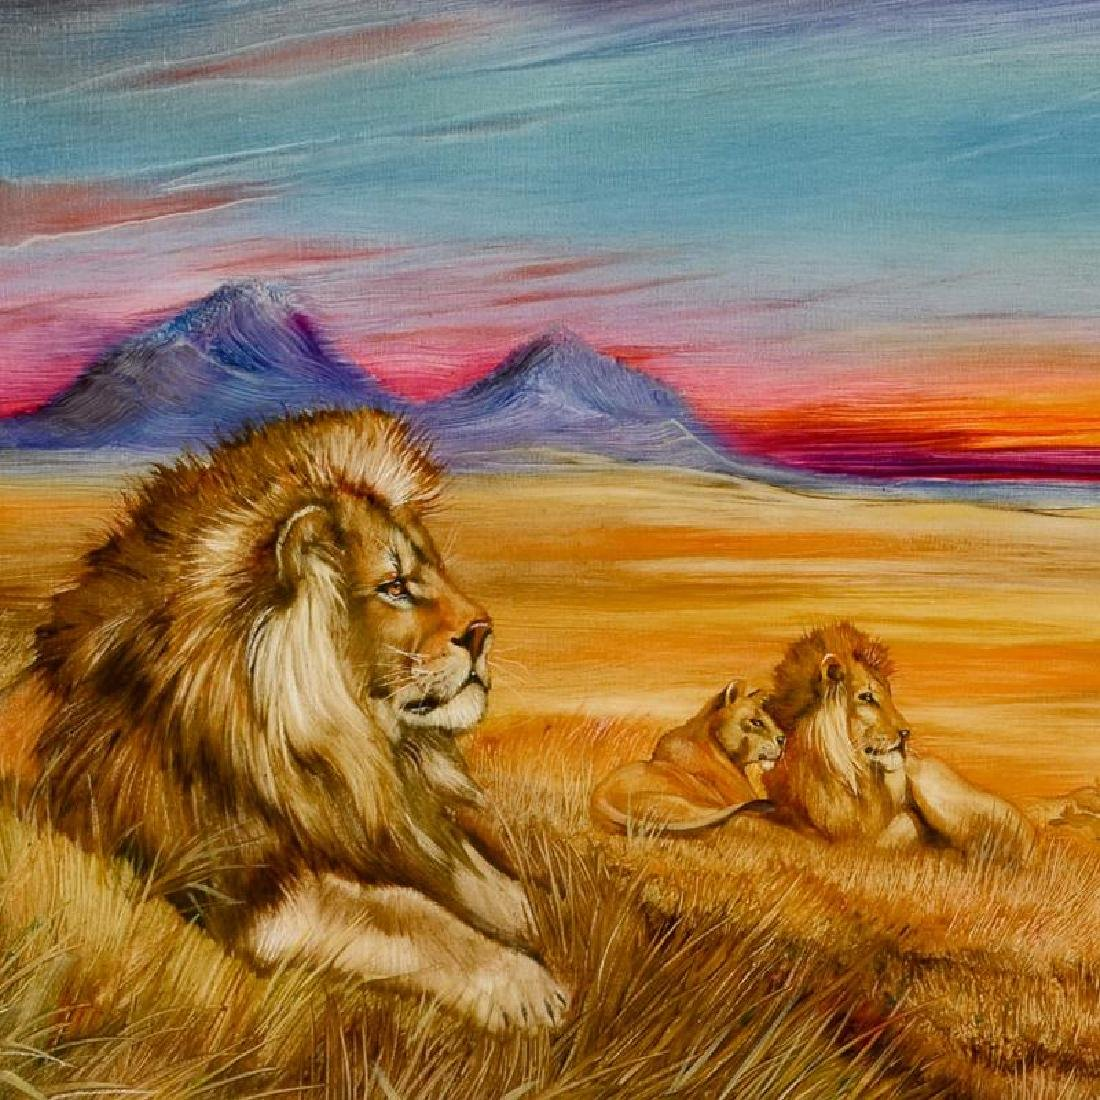 Pride Of Lions by Katon, Martin - 2